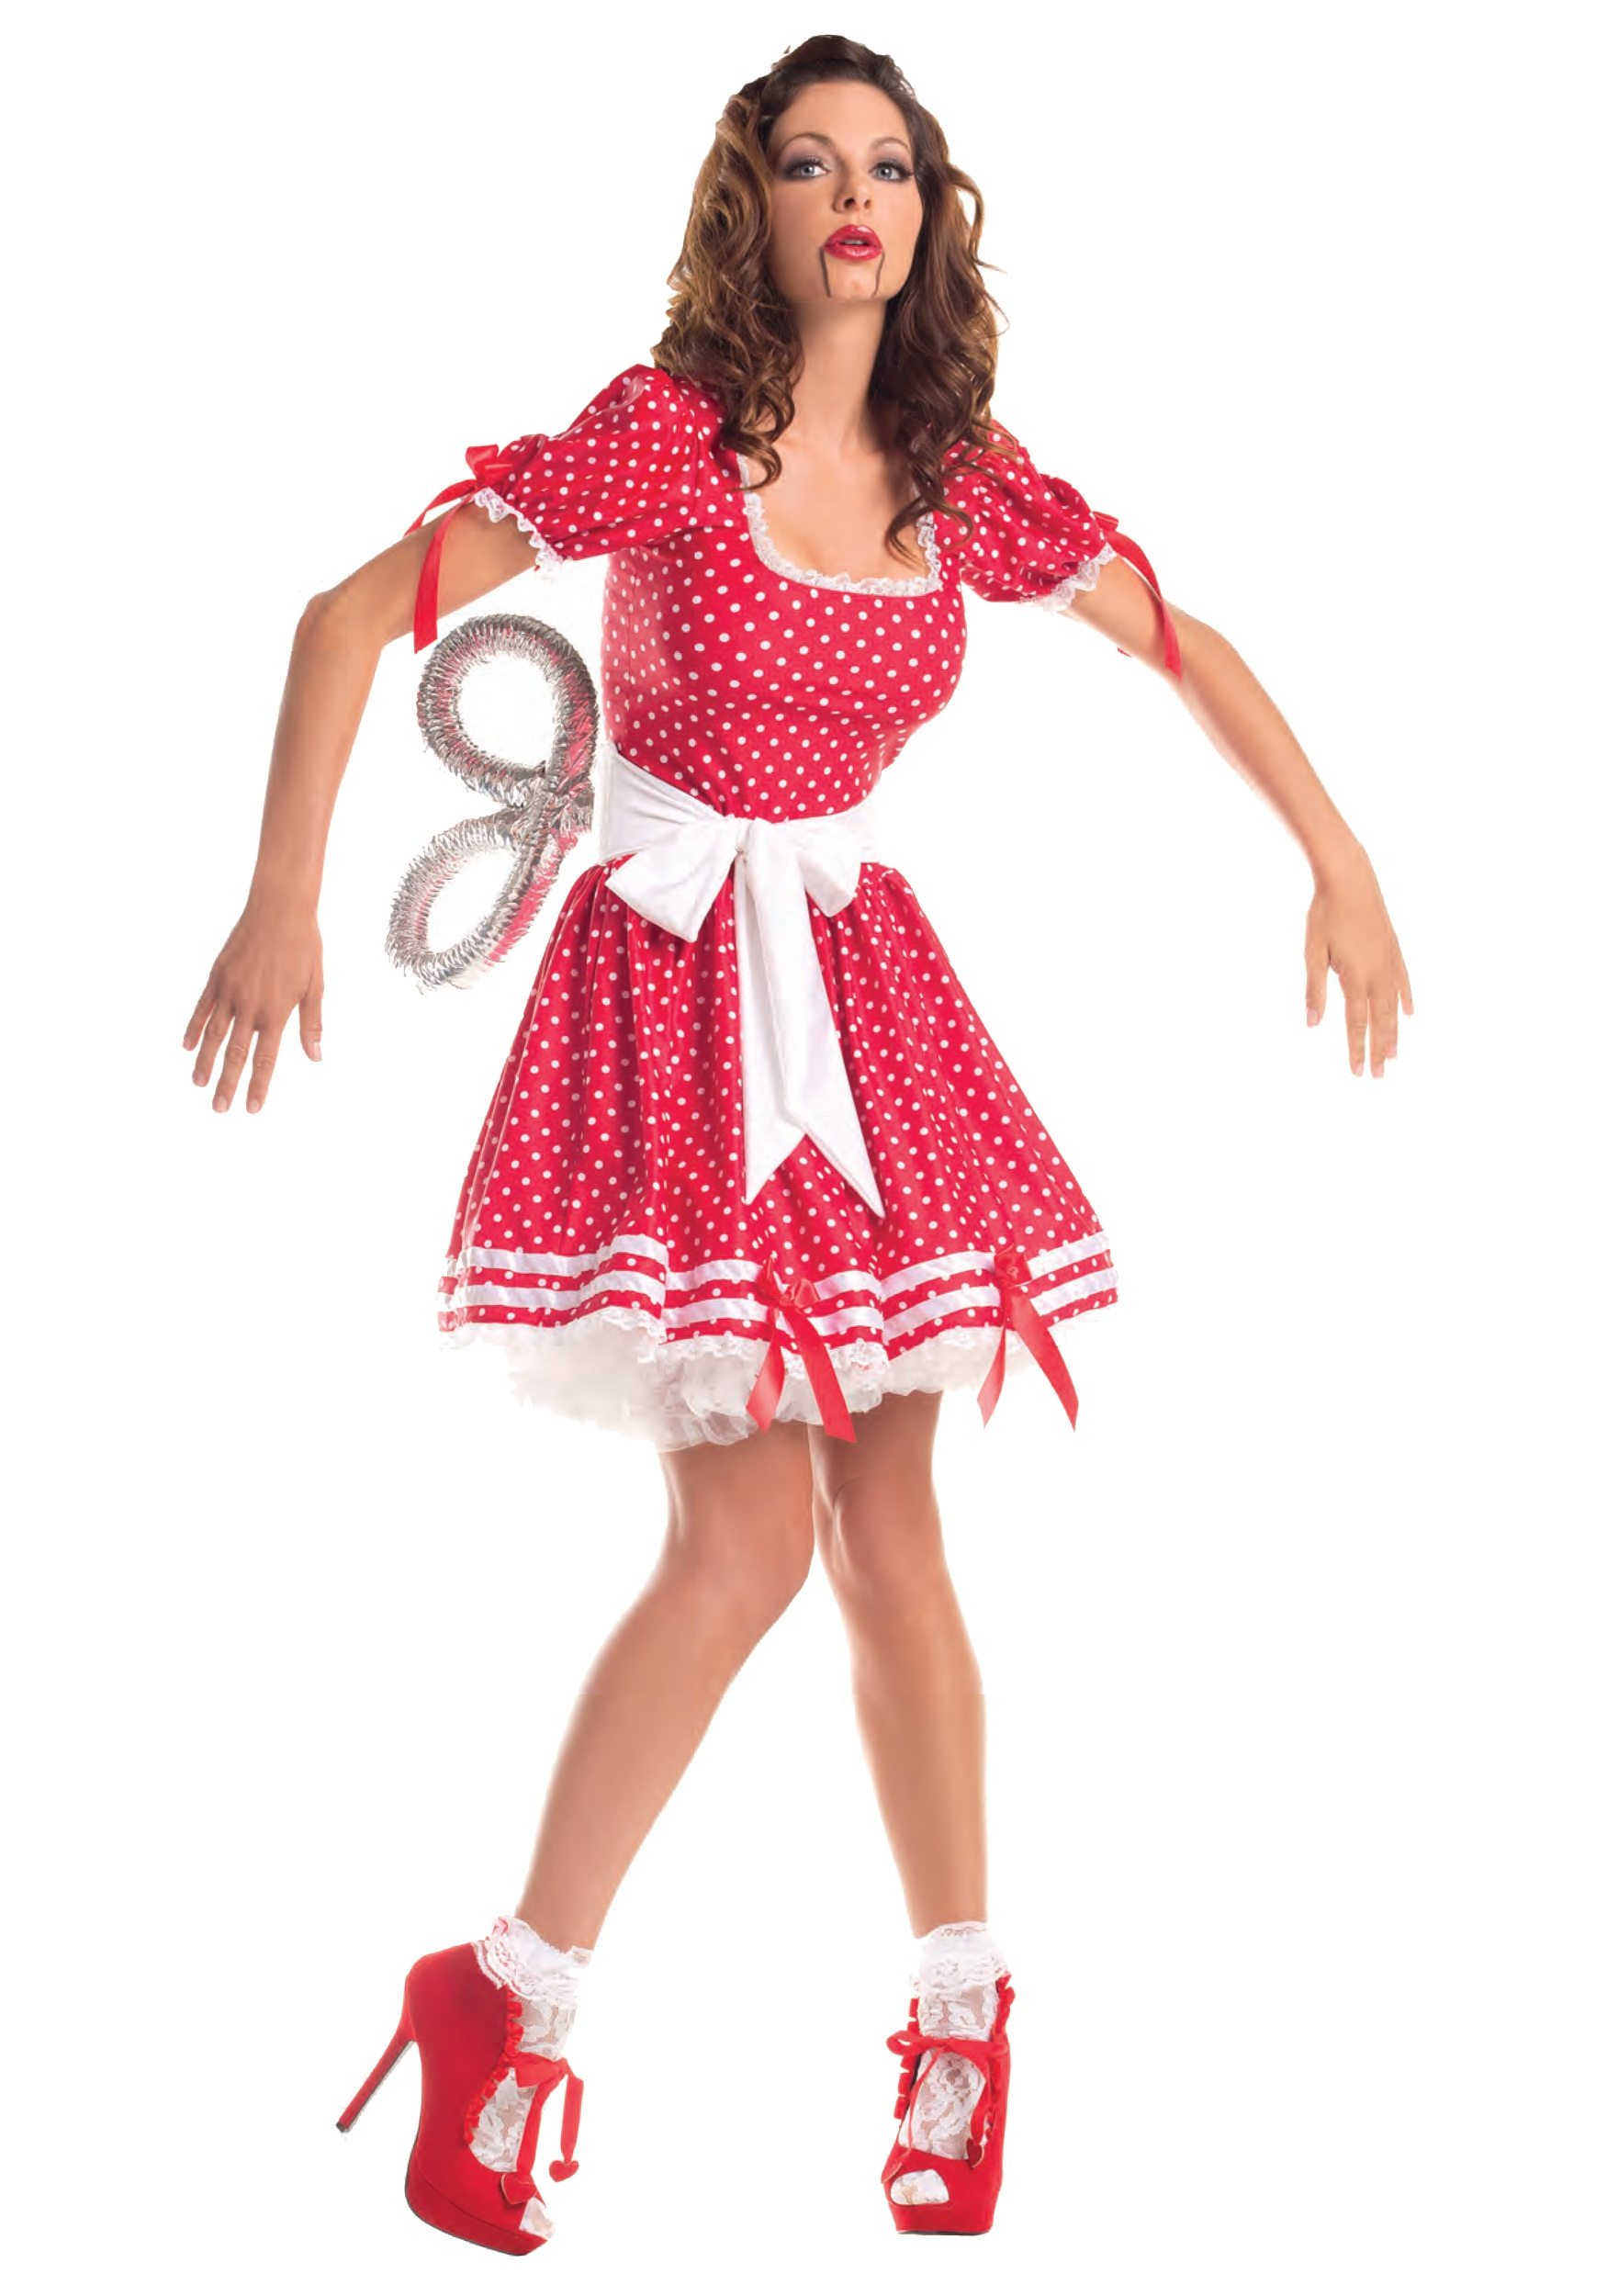 Porcelain Doll Costumes Adults Adult Wind up Doll Costume